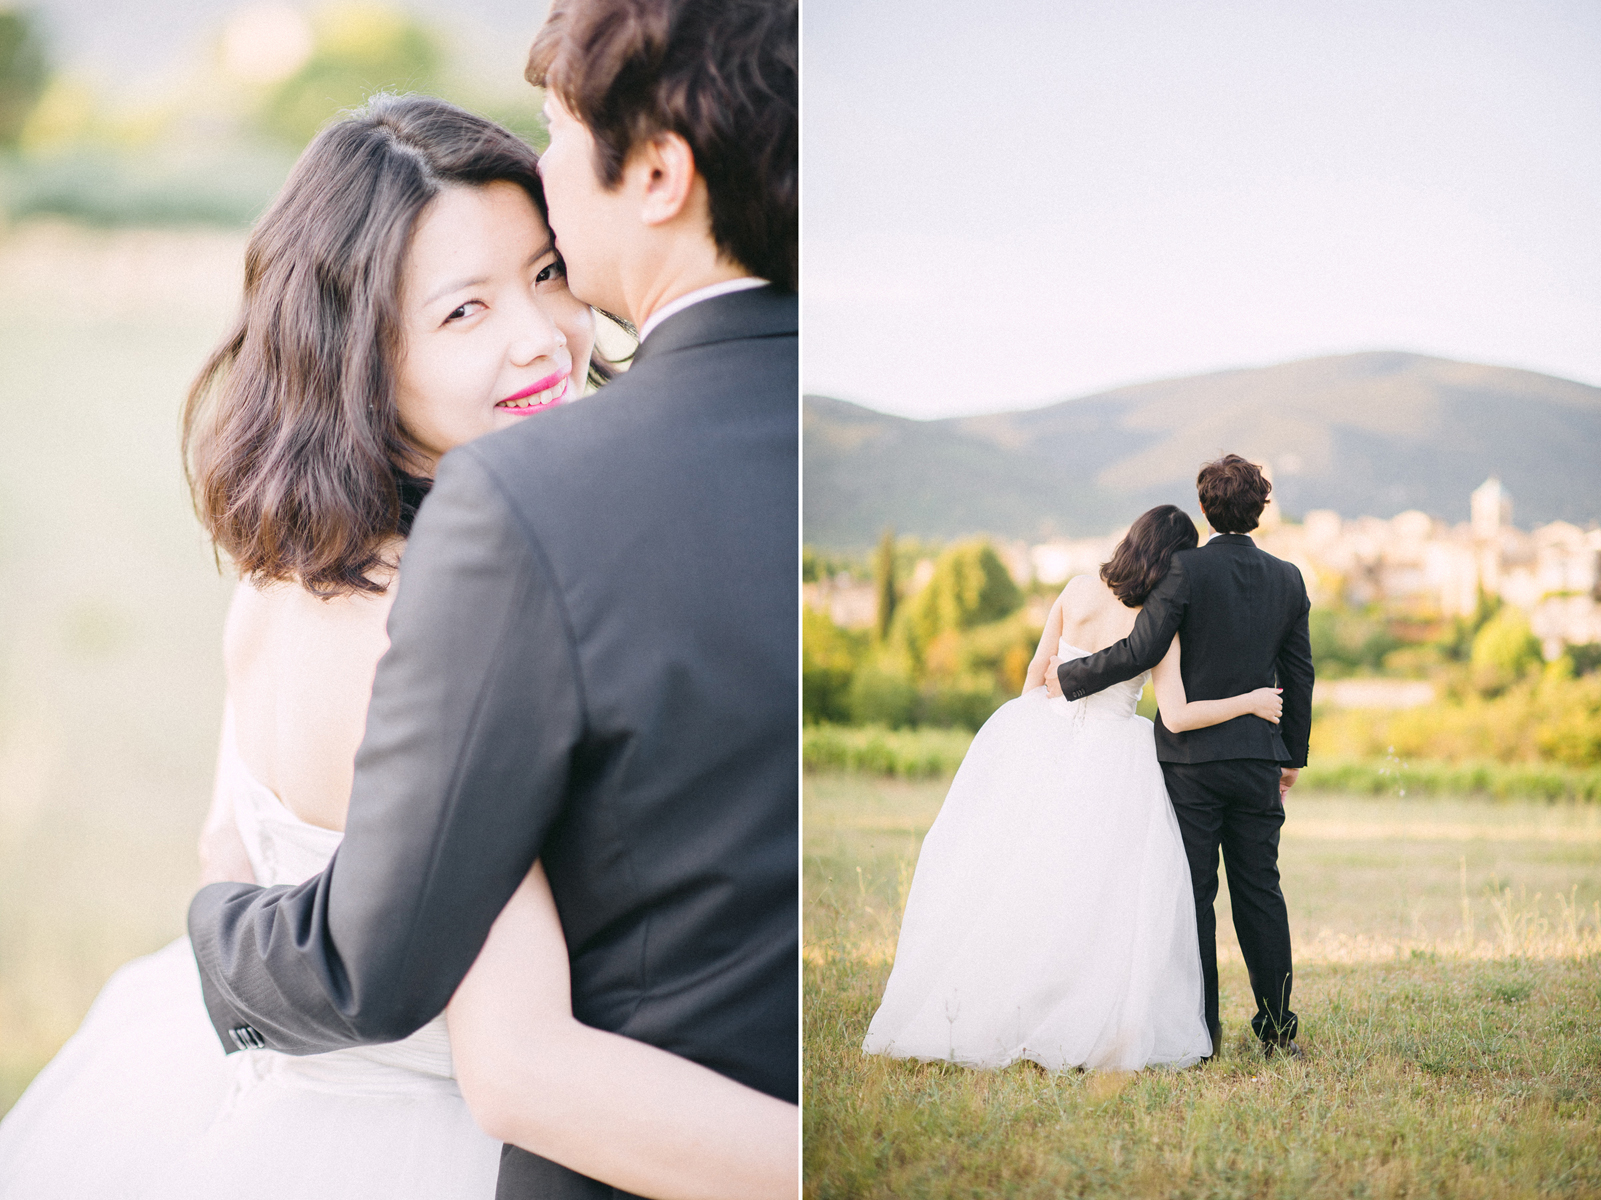 Boheme-Moon-Wedding-Photography-Taiwan-Pre-Wedding-Provence_20.jpg